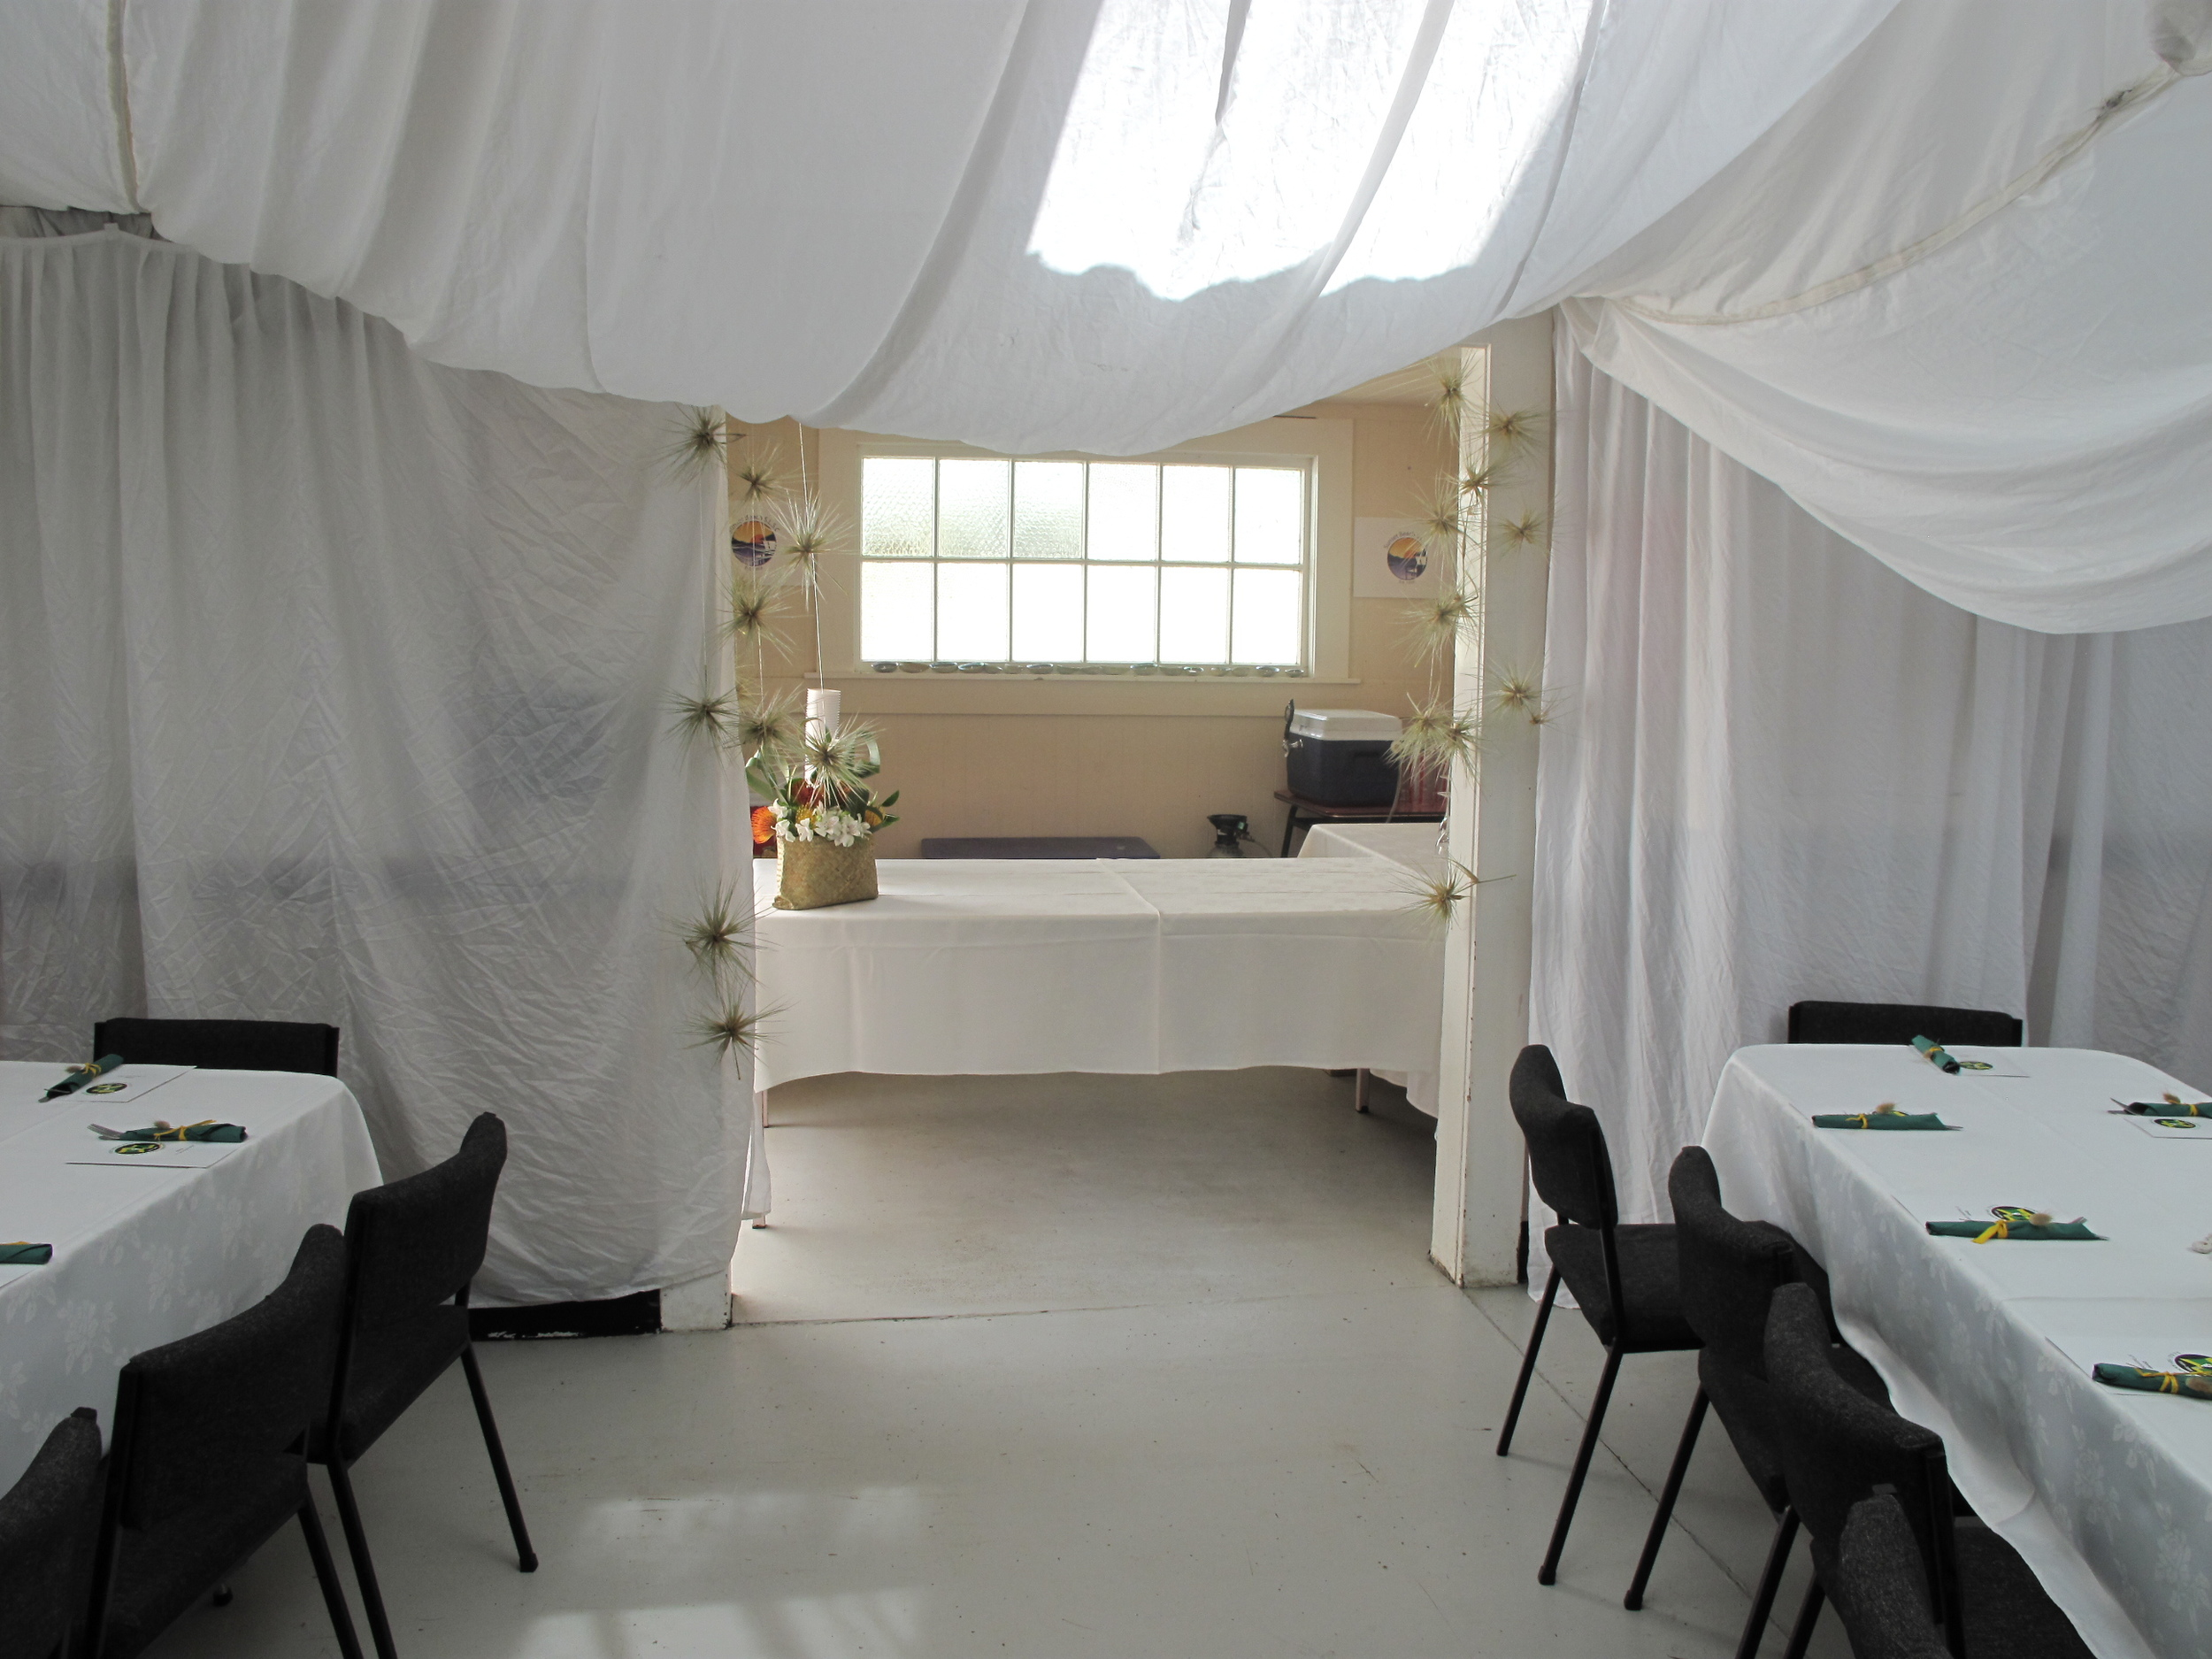 Local hire companies can supply items for your even. The local community hall is also able to hire tables and chairs.